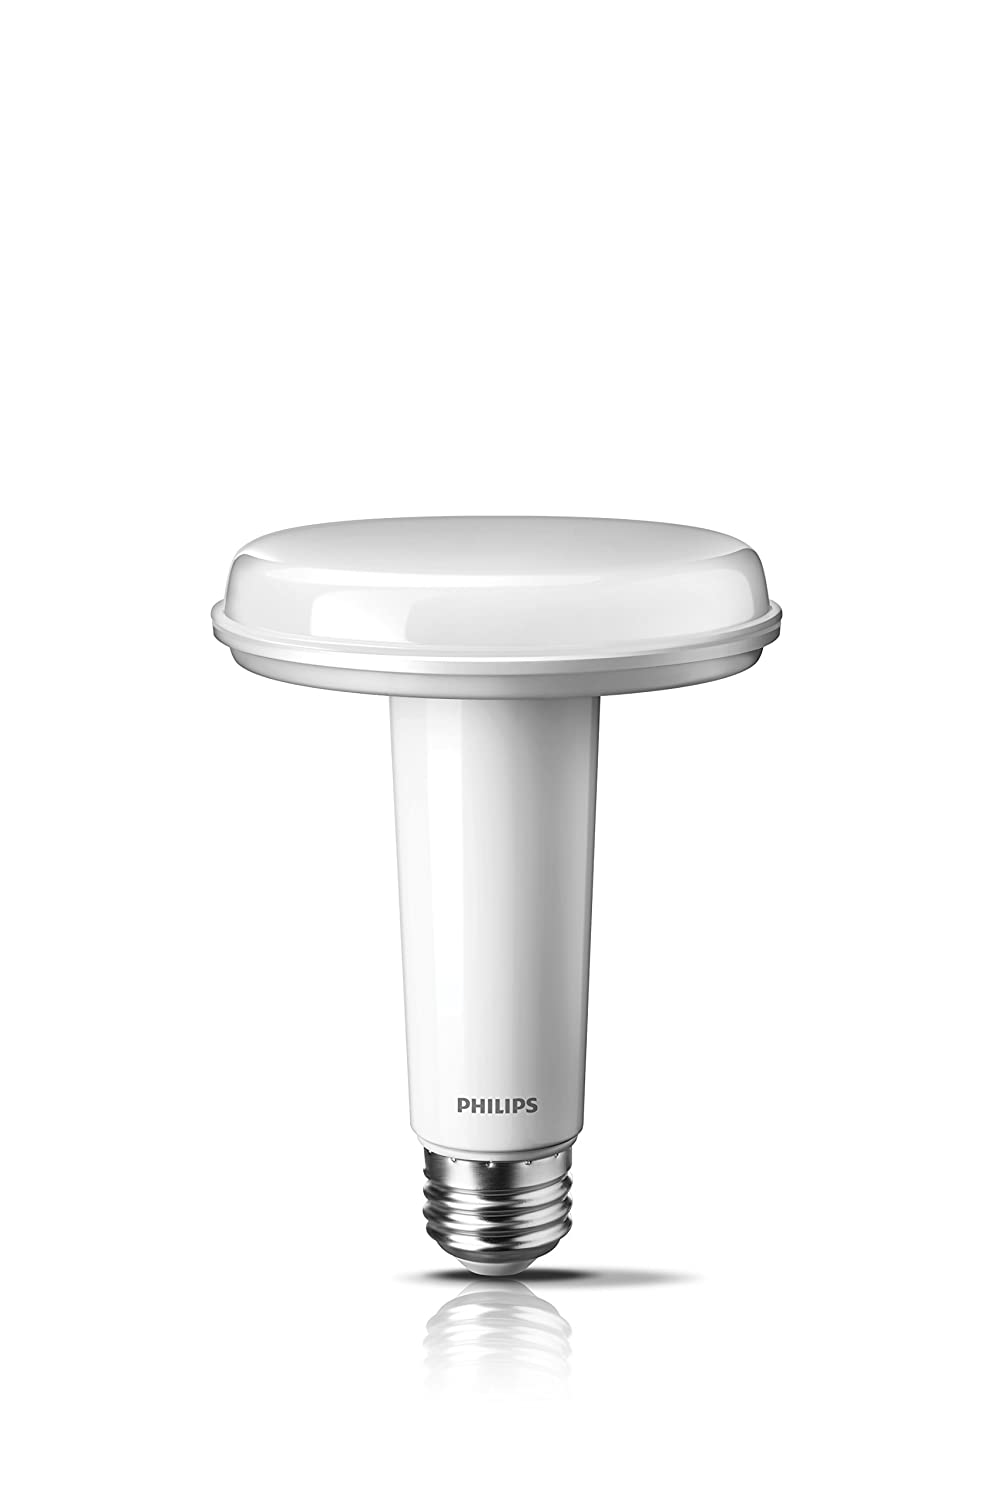 Philips 452466 65 Watt Equivalent Slim Style BR30 LED Dimmable Daylight Light Bulb